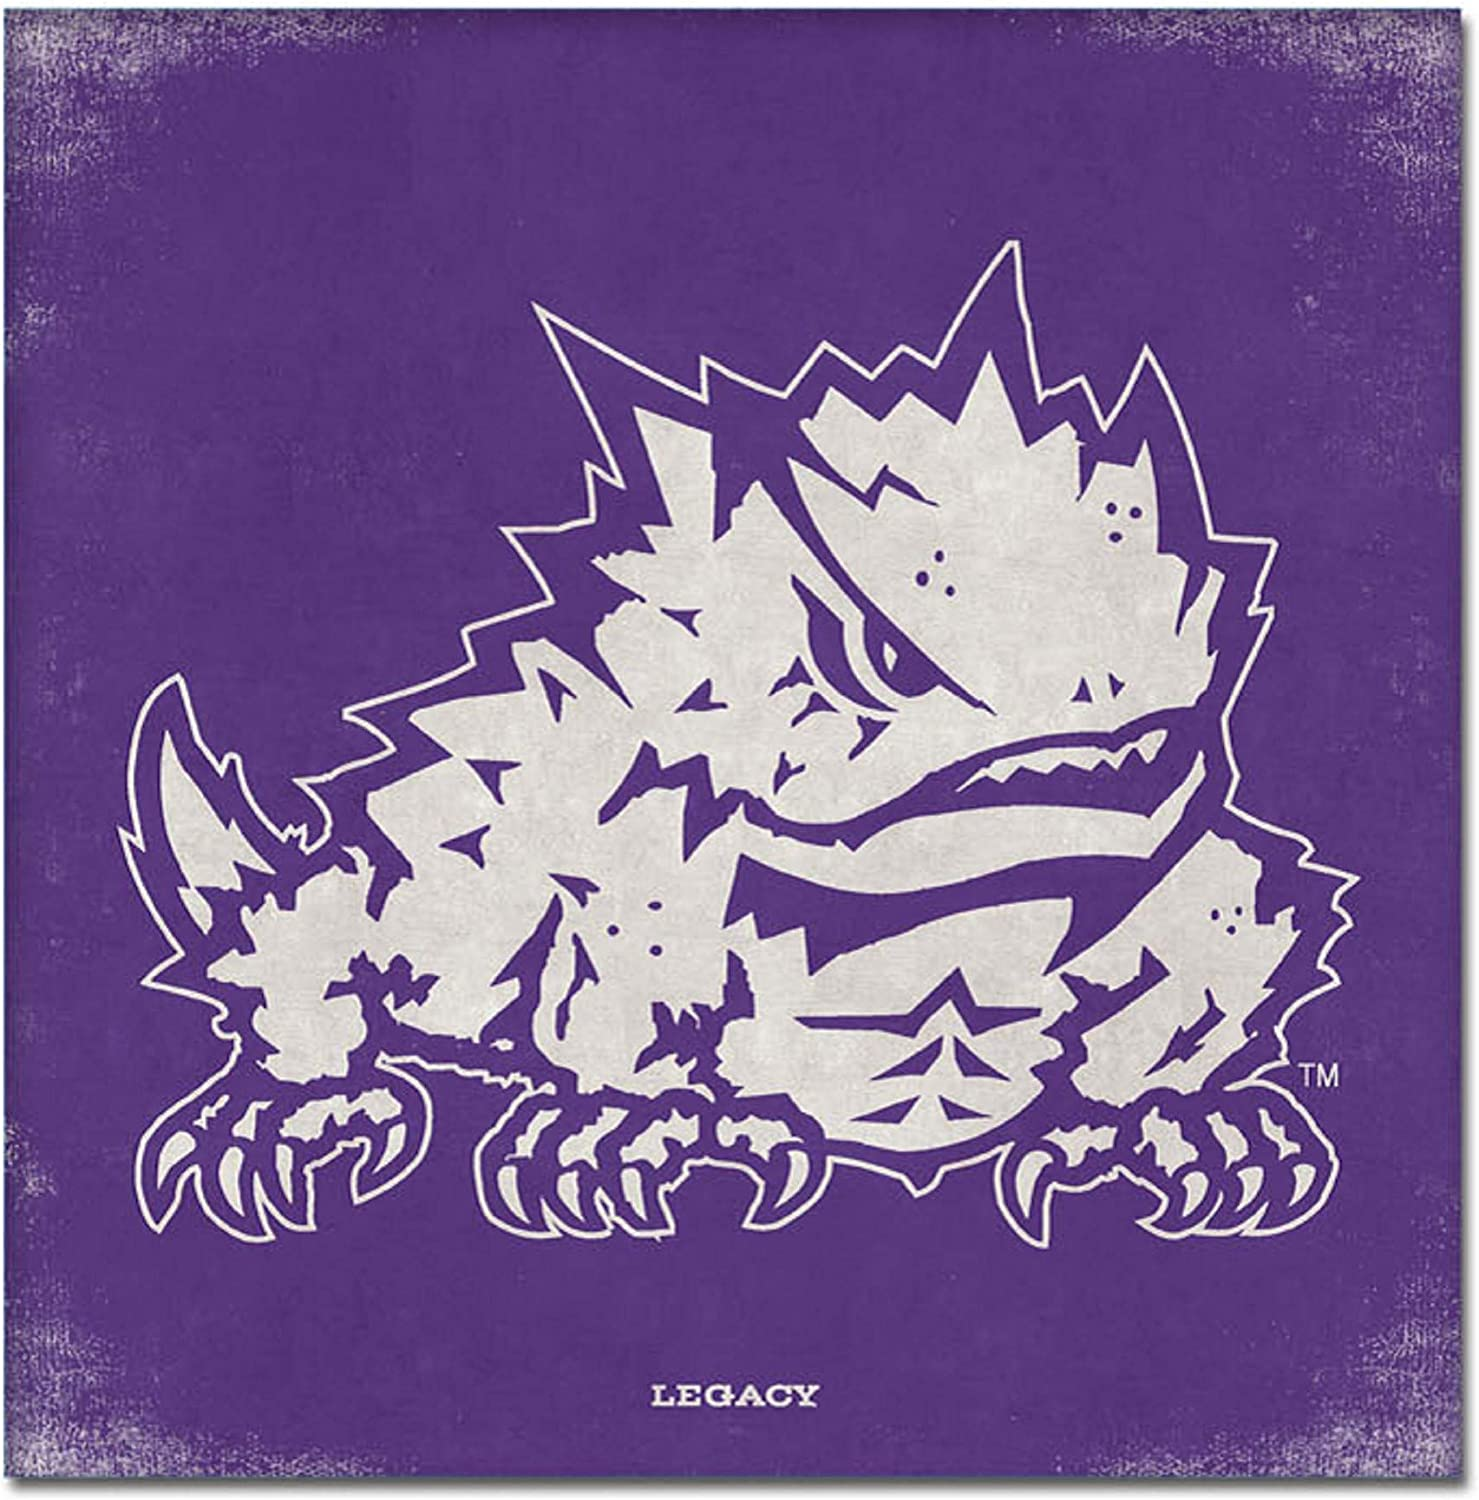 Custom NCAA Legacy Tcu Horned Frogs Mini Canvas Art 9x9 One Size